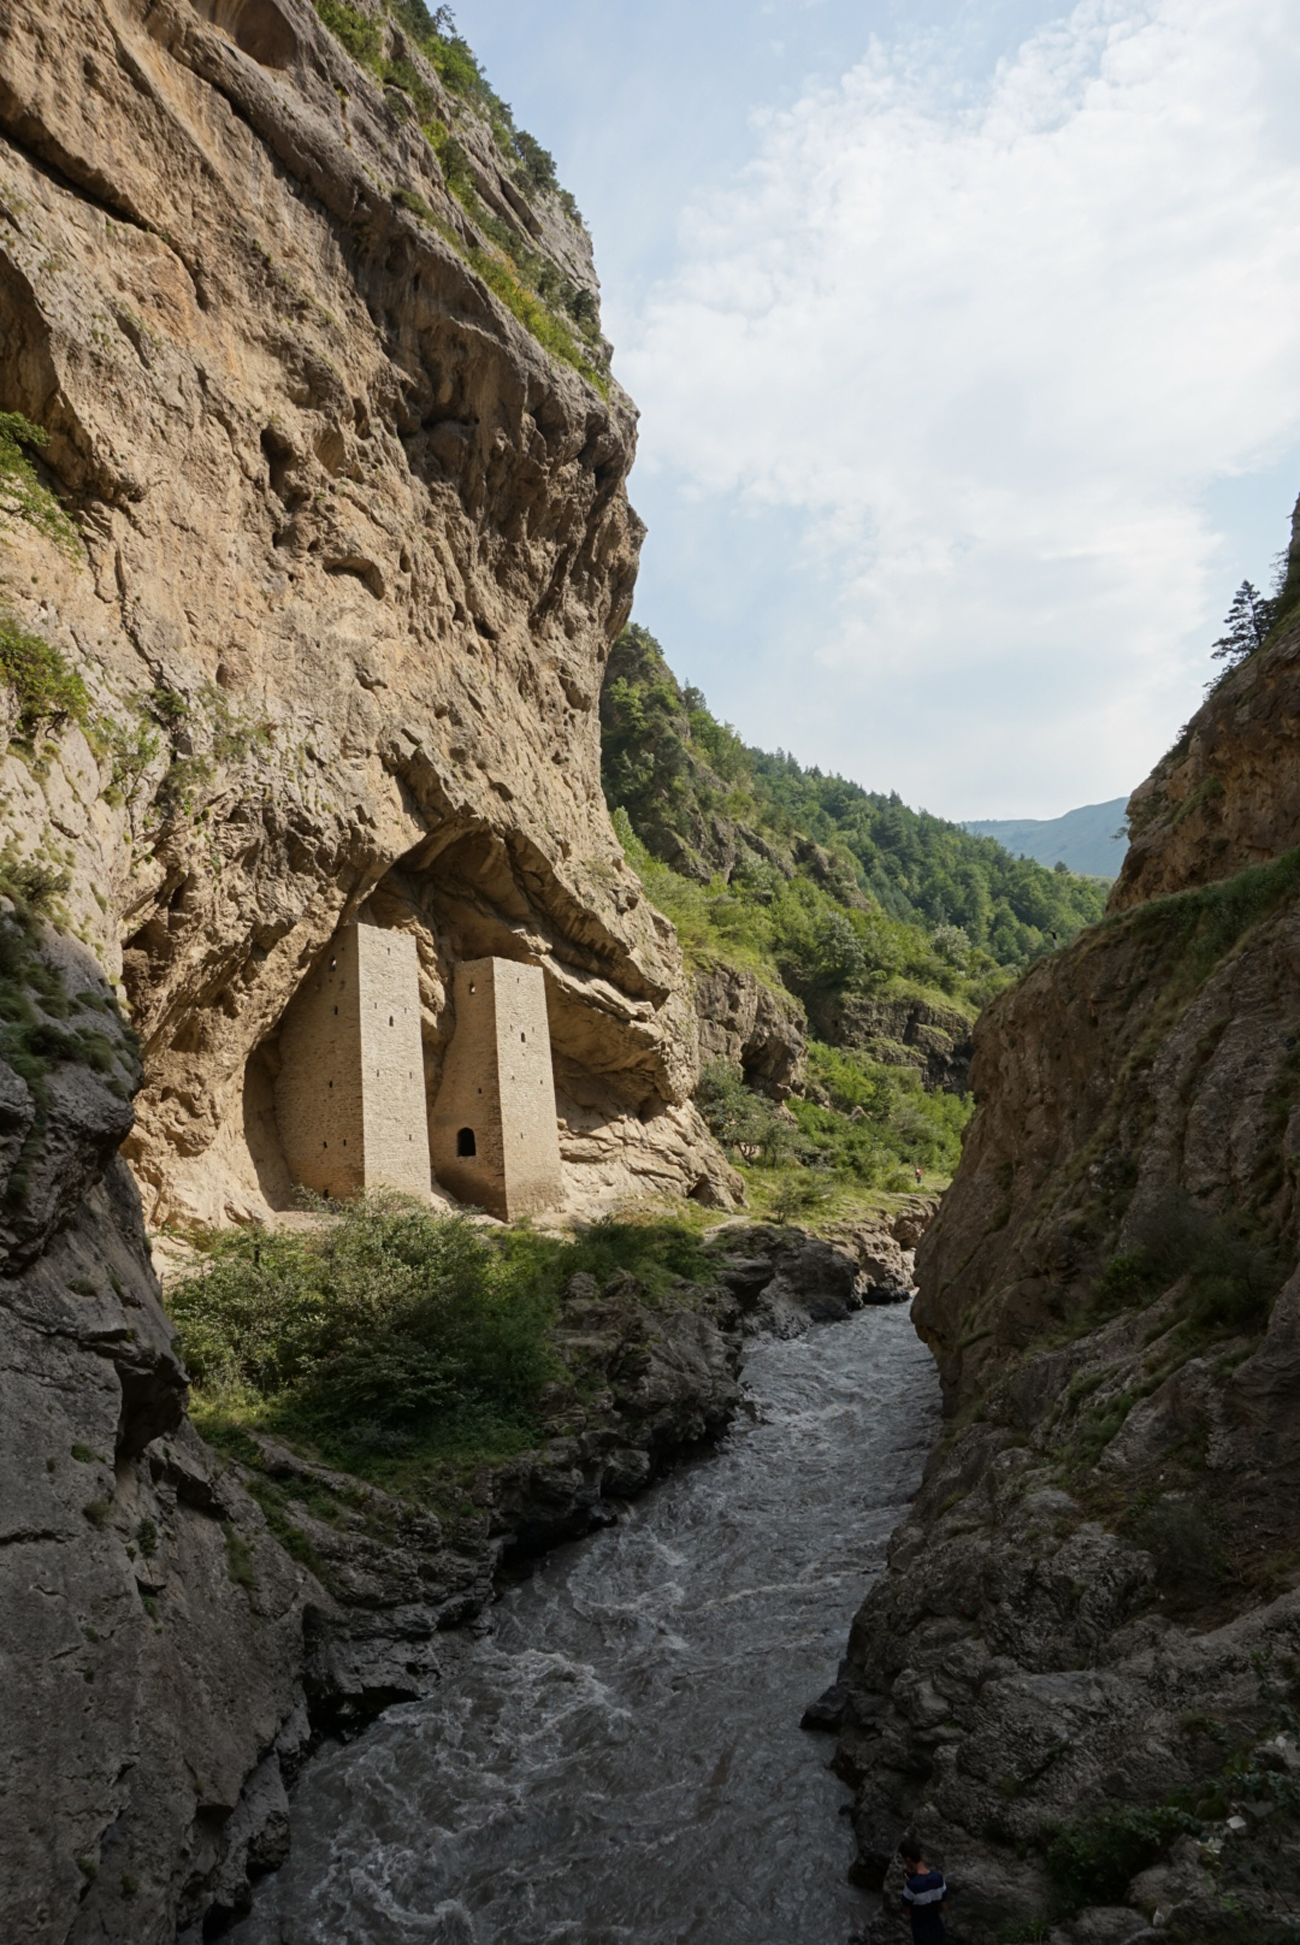 """MIlitary towers in the Argun River gorge built in the end of the 10th - early 11th century. Source: <a  data-cke-saved-href=""""http://www.pictaram.com/user/unknown_caucasus/2533907852"""" href=""""http://www.pictaram.com/user/unknown_caucasus/2533907852"""" target=""""_blank"""">Muslim Alimirzaev</a>"""